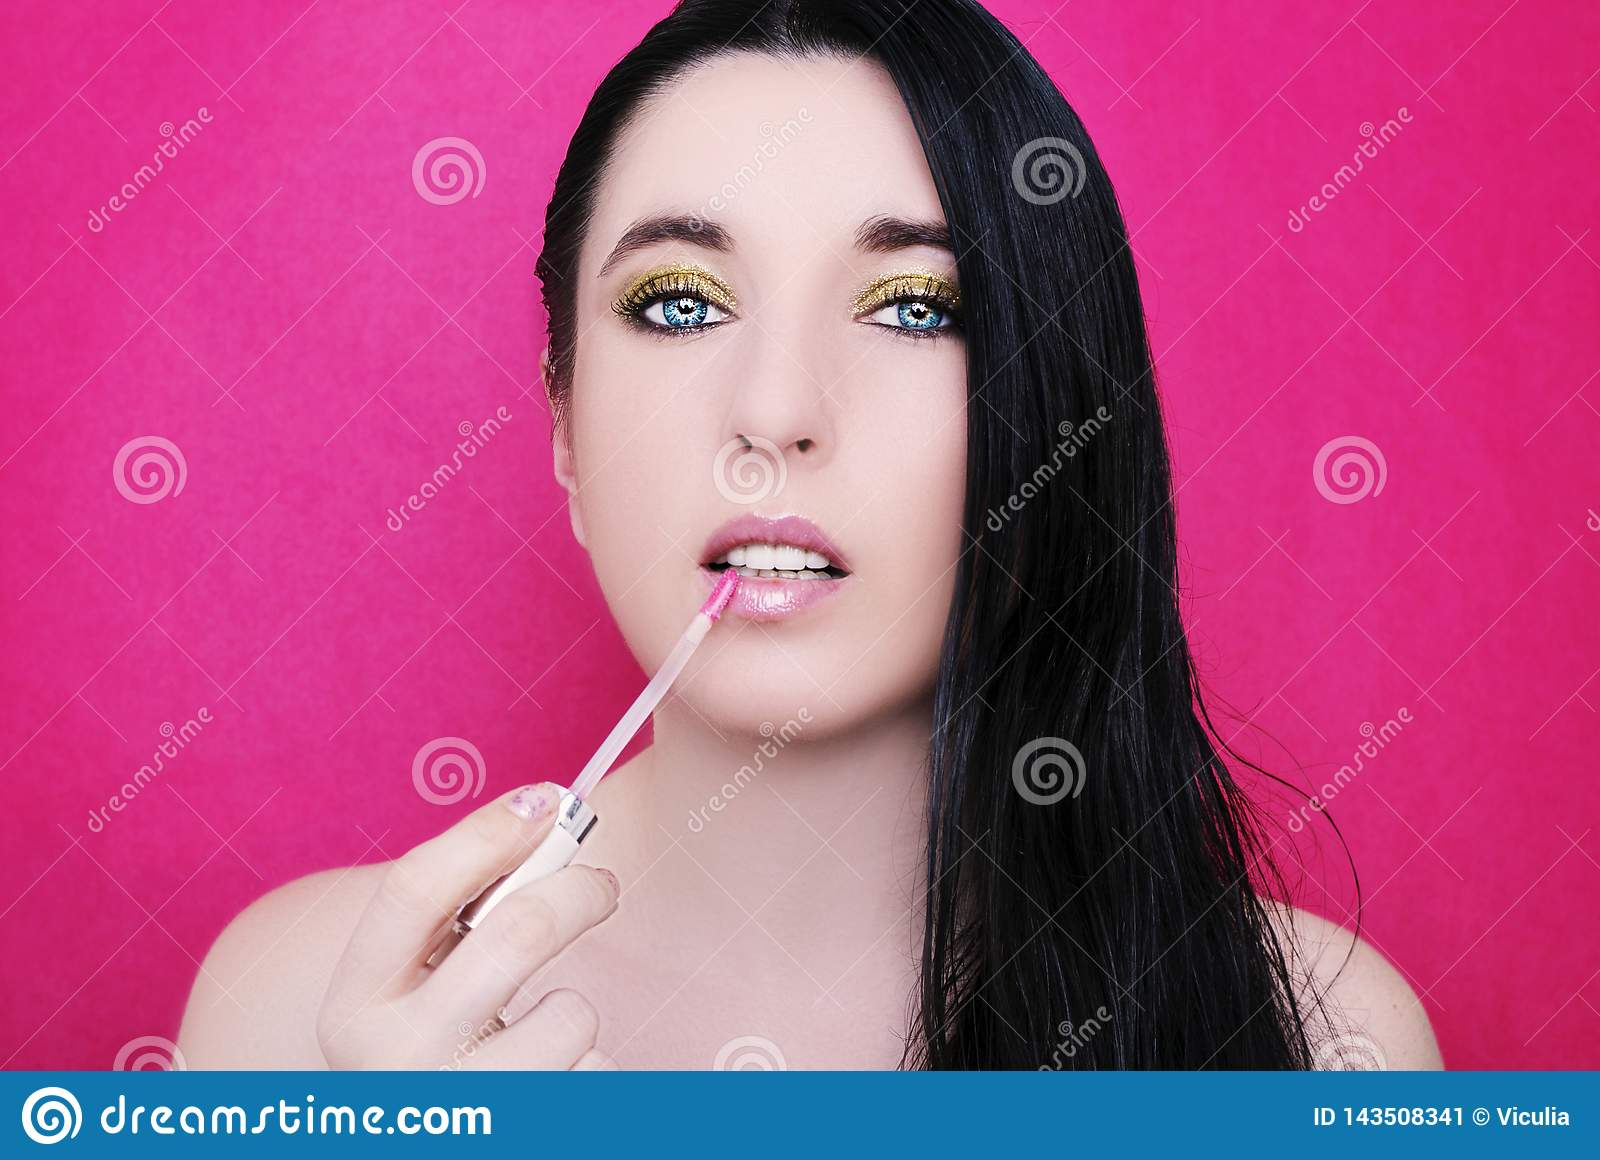 Young Beautiful Woman With Bright Makeup Stock Image